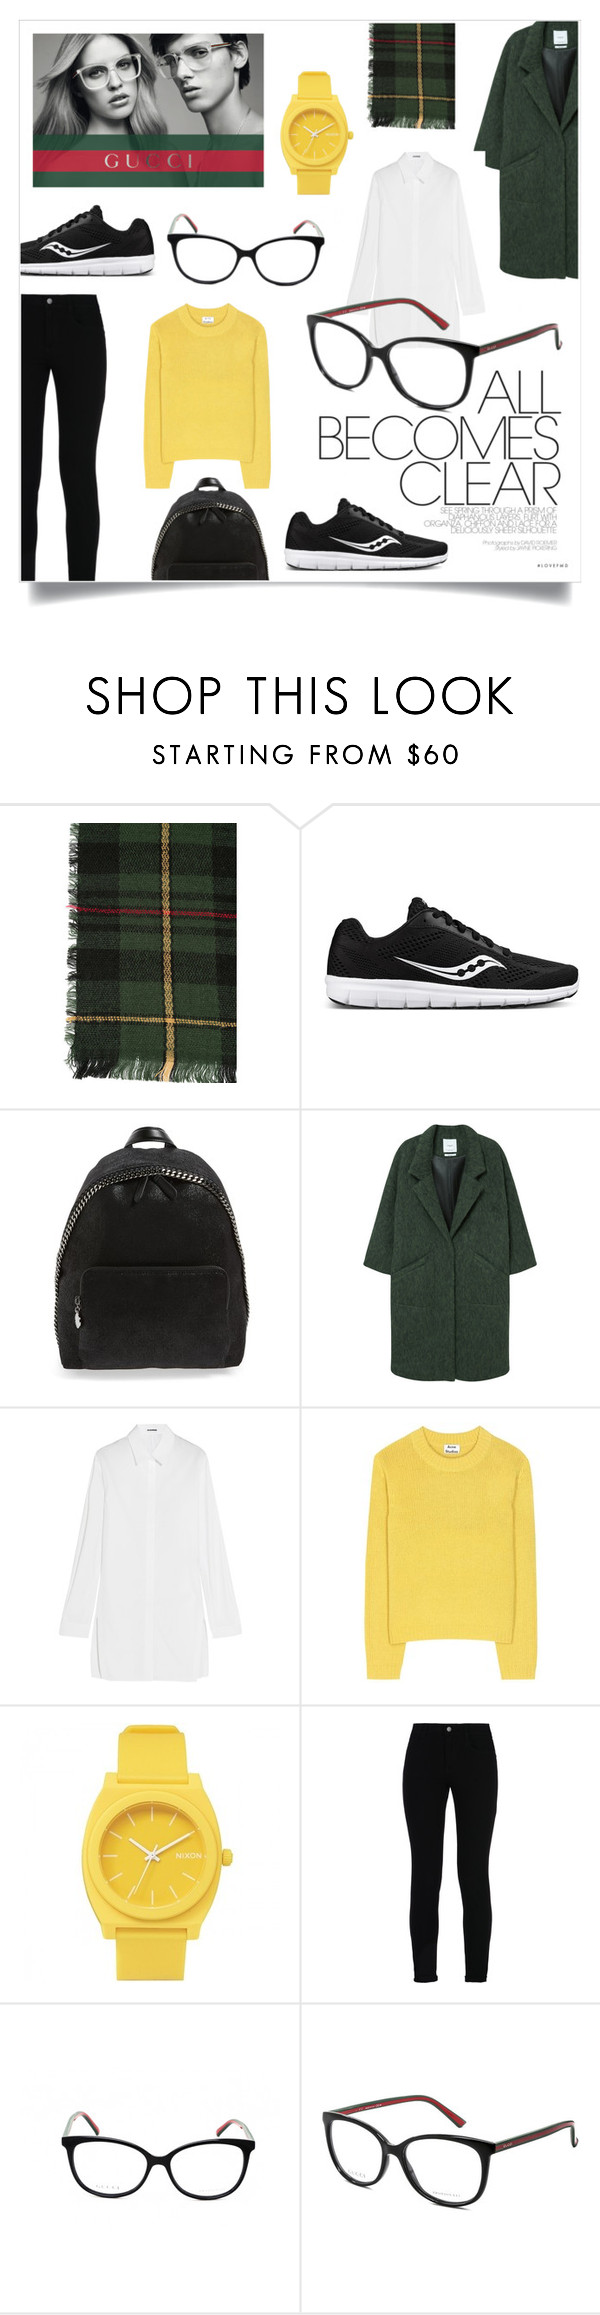 """""""A Moment of Clarity"""" by lamemechose ❤ liked on Polyvore featuring Saucony, STELLA McCARTNEY, MANGO, Jil Sander, Acne Studios, Nixon, Gucci, StreetStyle, sneakers and smartbuyglasses"""